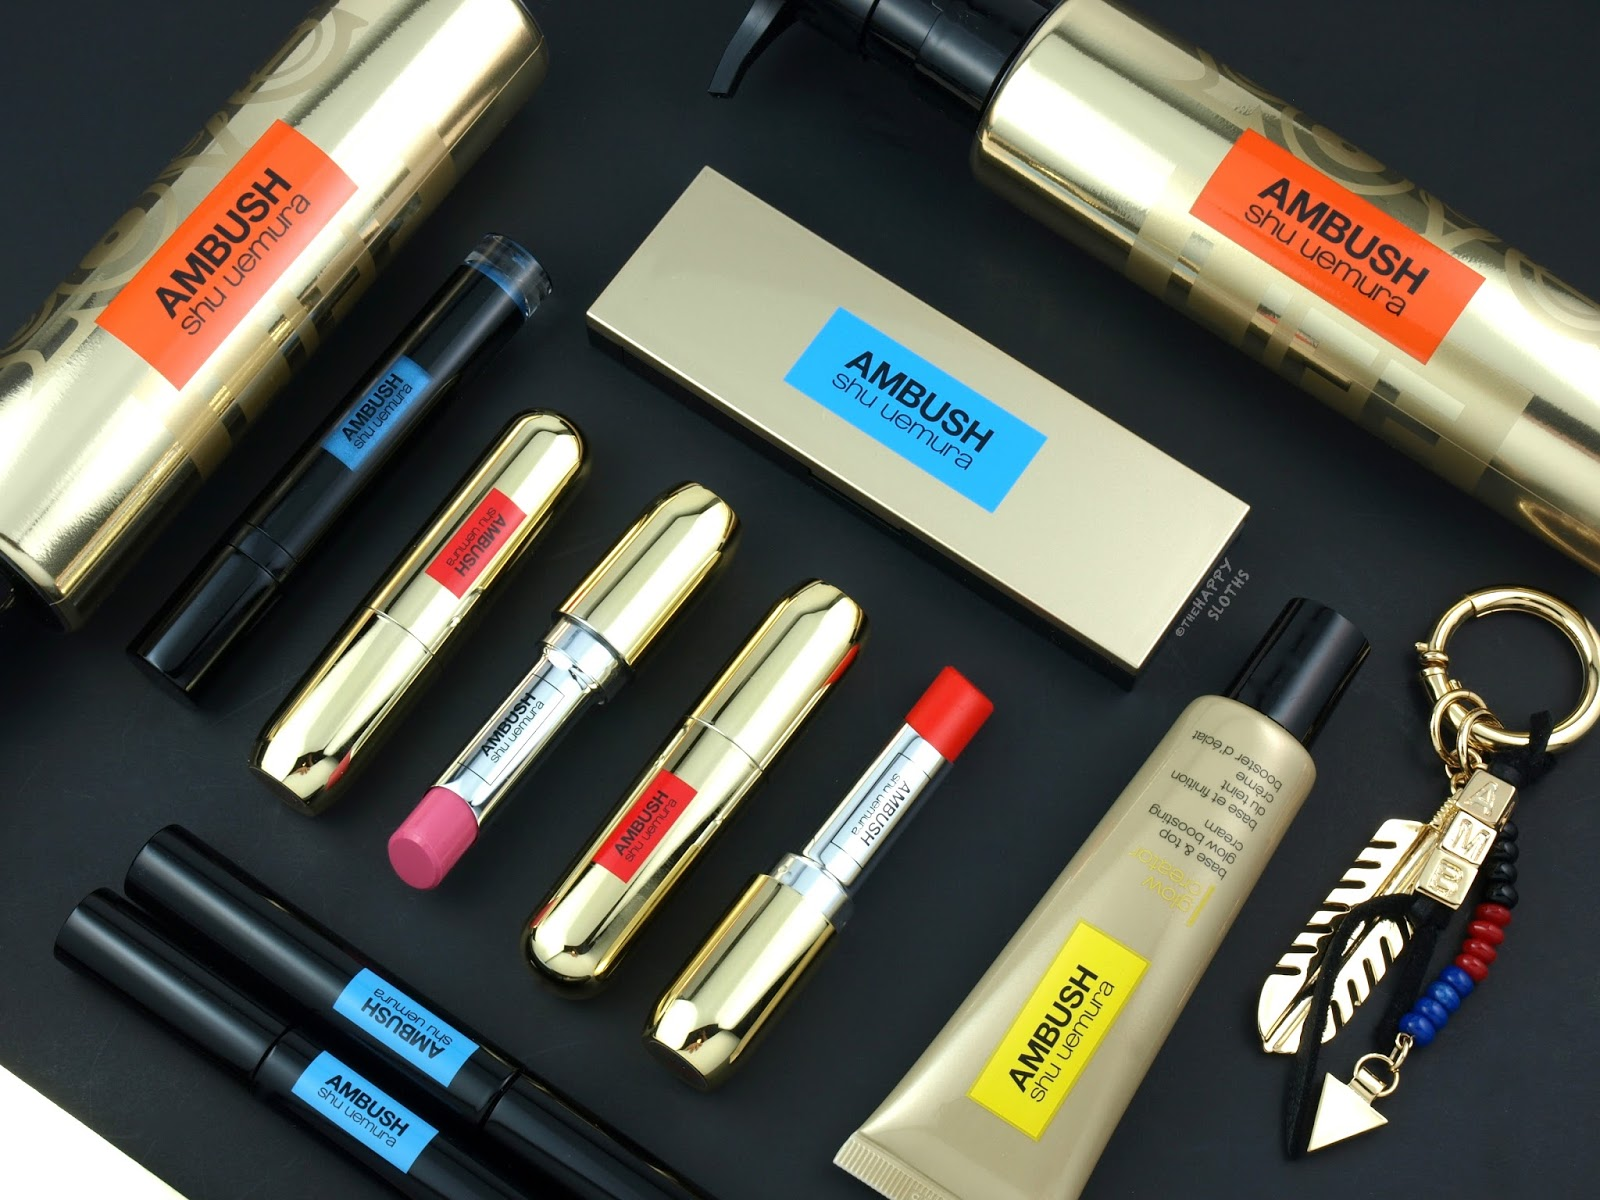 Shu Uemura x AMBUSH Collection: Review and Swatches